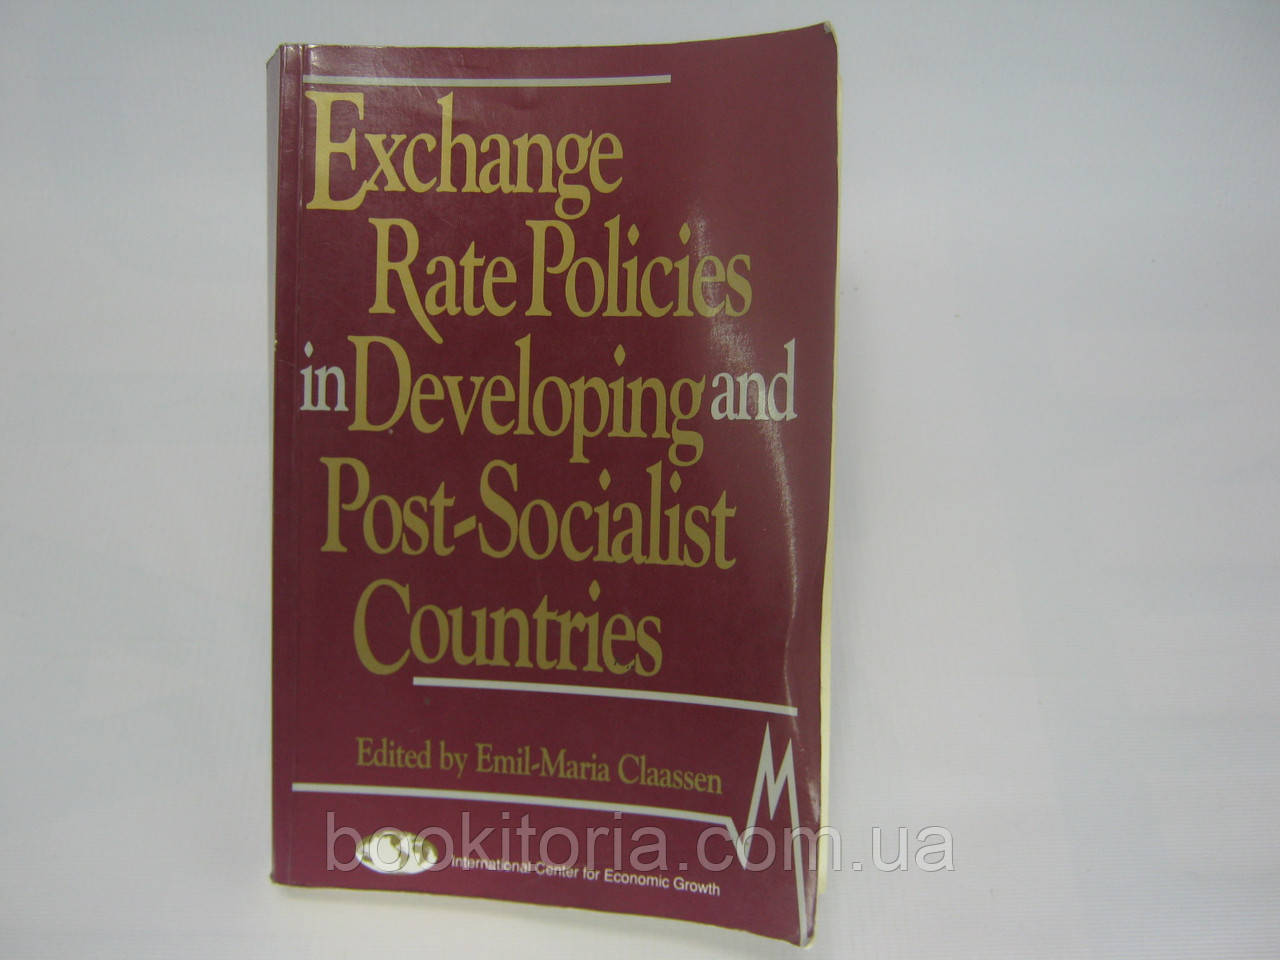 Exchange Rate Policies in Developing and Post-Socialist Countries (б/у).